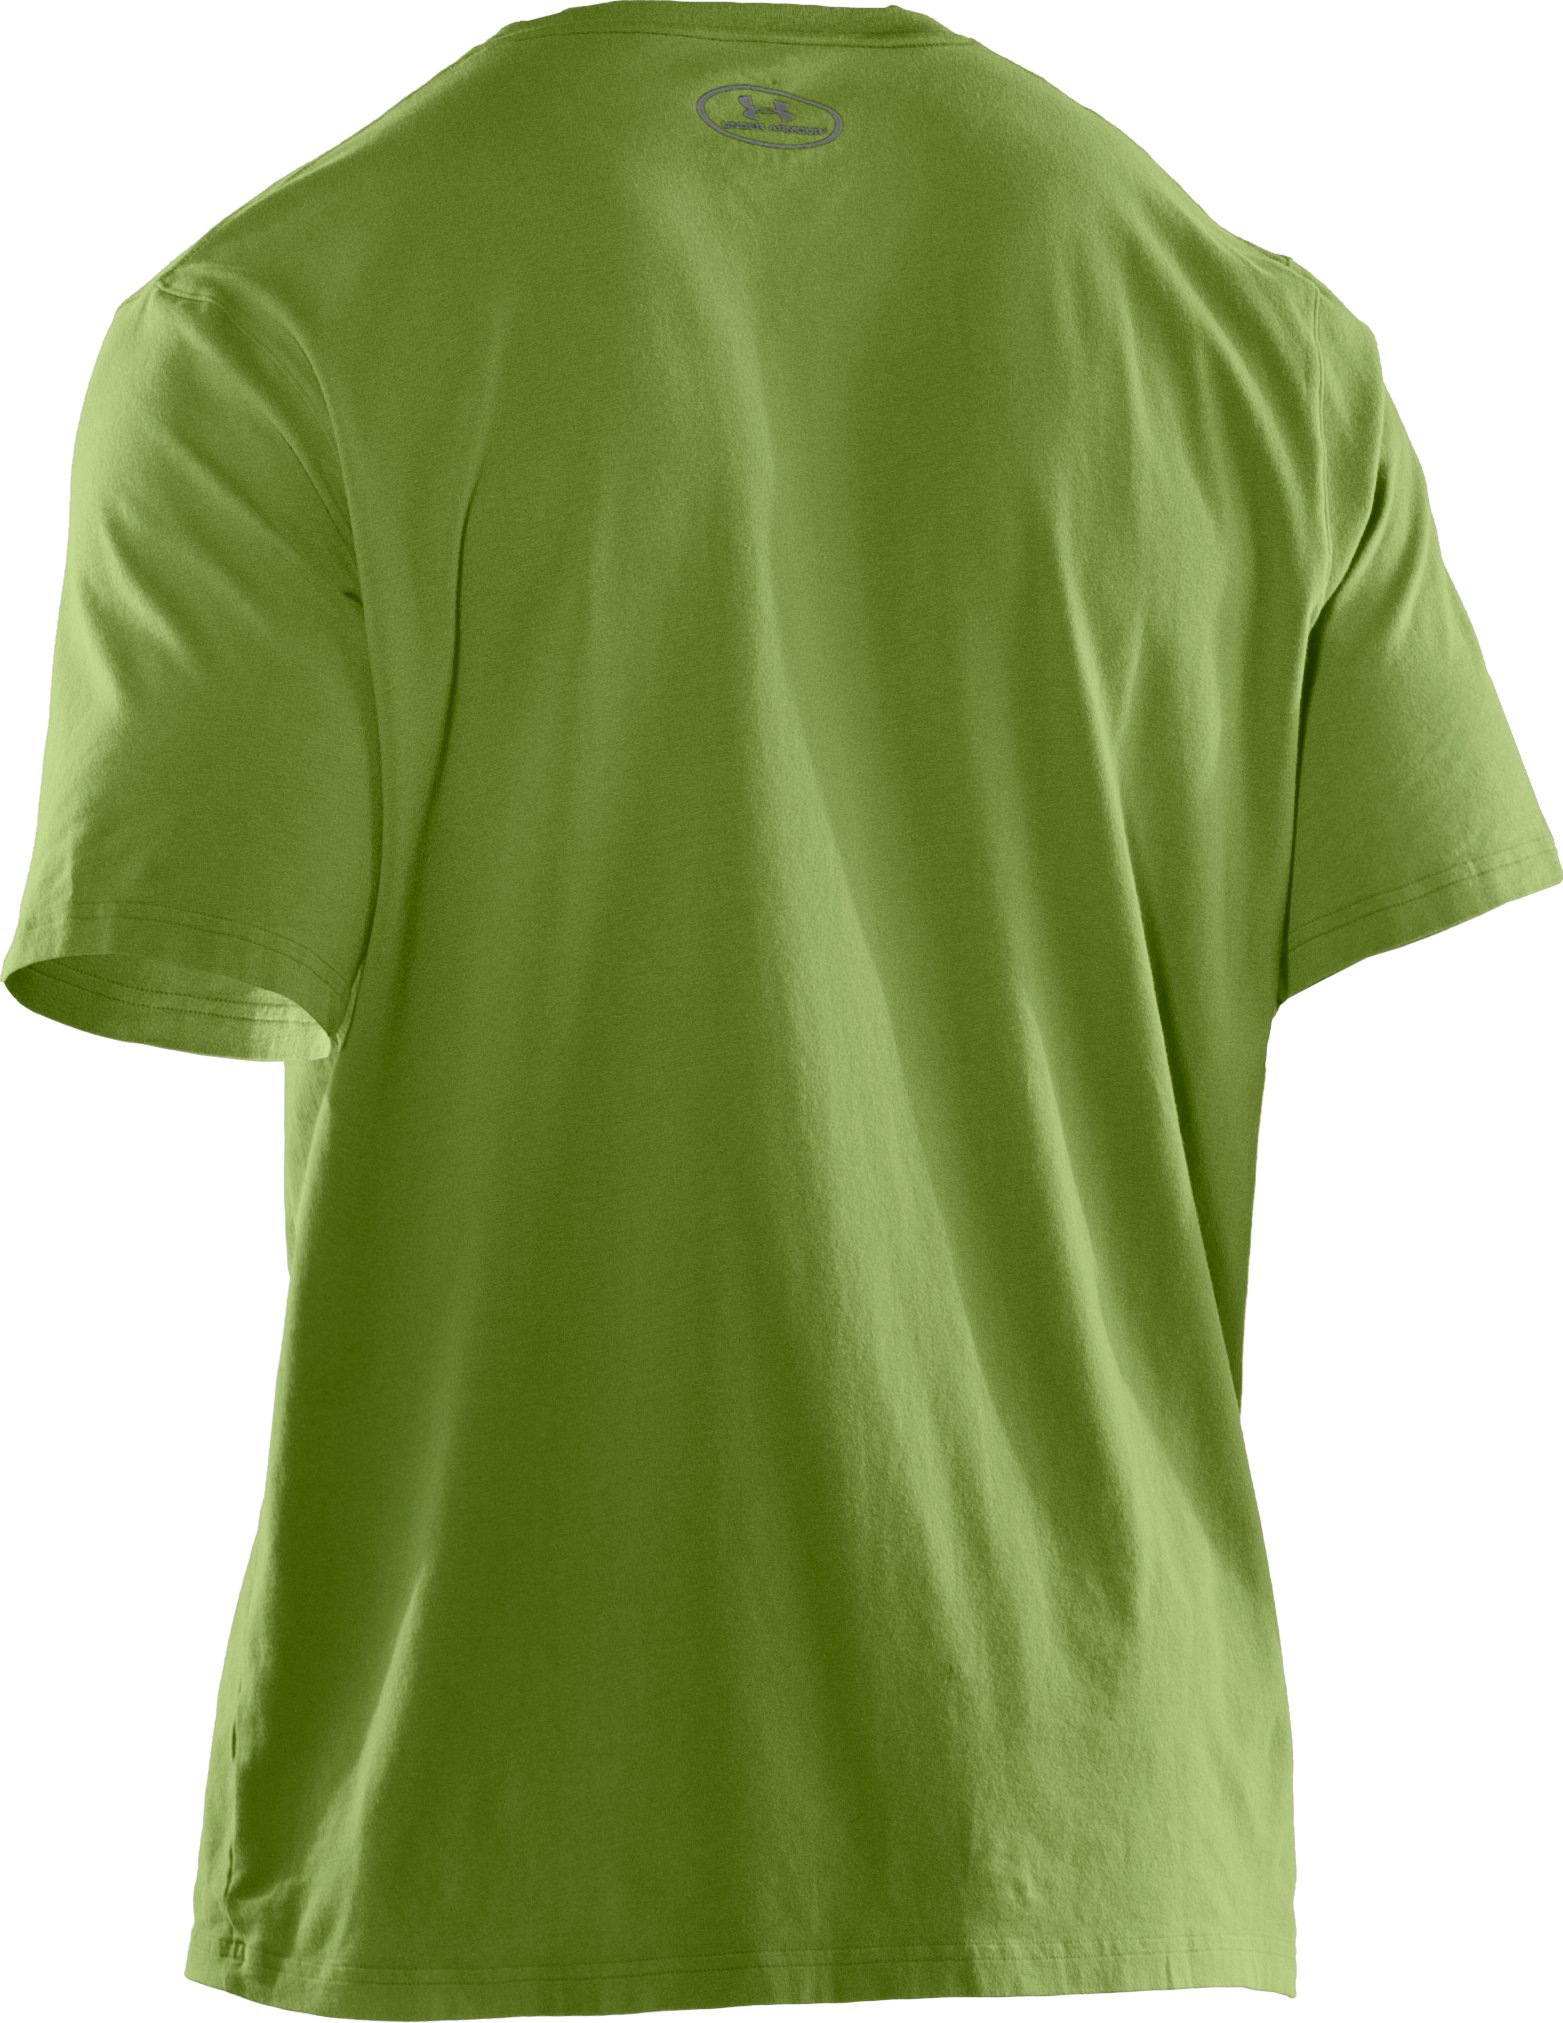 Men's Charged Cotton® T-Shirt, Kildare, undefined